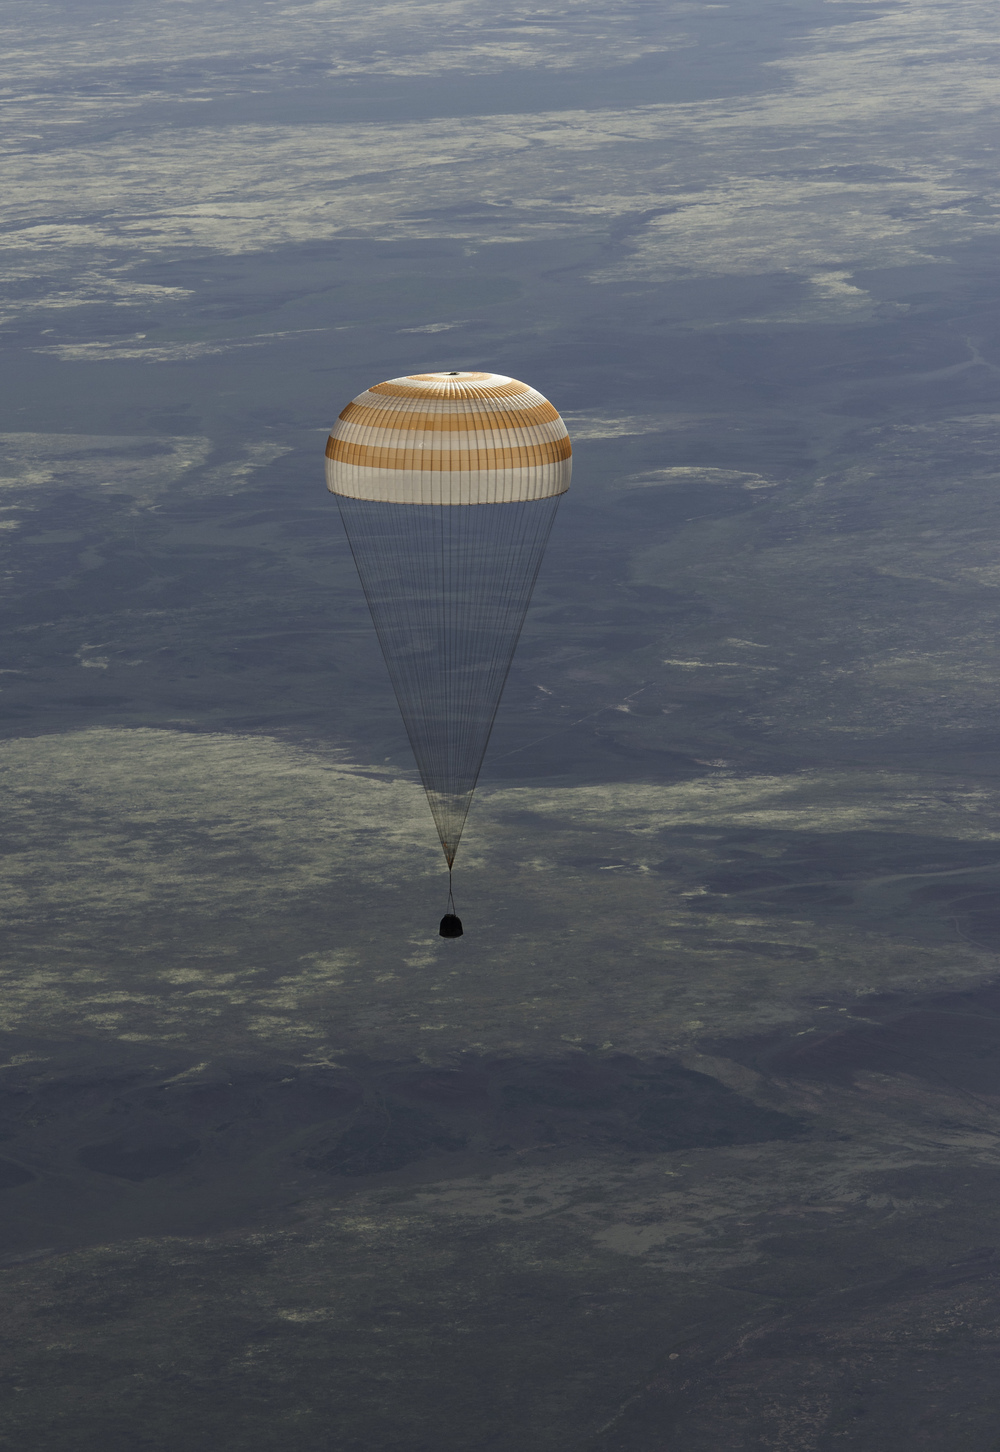 The Soyuz TMA-07M spacecraft is seen as it lands with Expedition 35 Commander Chris Hadfield of the Canadian Space Agency (CSA), NASA Flight Engineer Tom Marshburn and Russian Flight Engineer Roman Romanenko of the Russian Federal Space Agency (Roscosmos) in a remote area near the town of Zhezkazgan, Kazakhstan, on Tuesday, May 14, 2013. Hadfield, Marshburn and Romanenko returned from five months onboard the International Space Station where they served as members of the Expedition 34 and 35 crews. (NASA/Carla Cioffi)